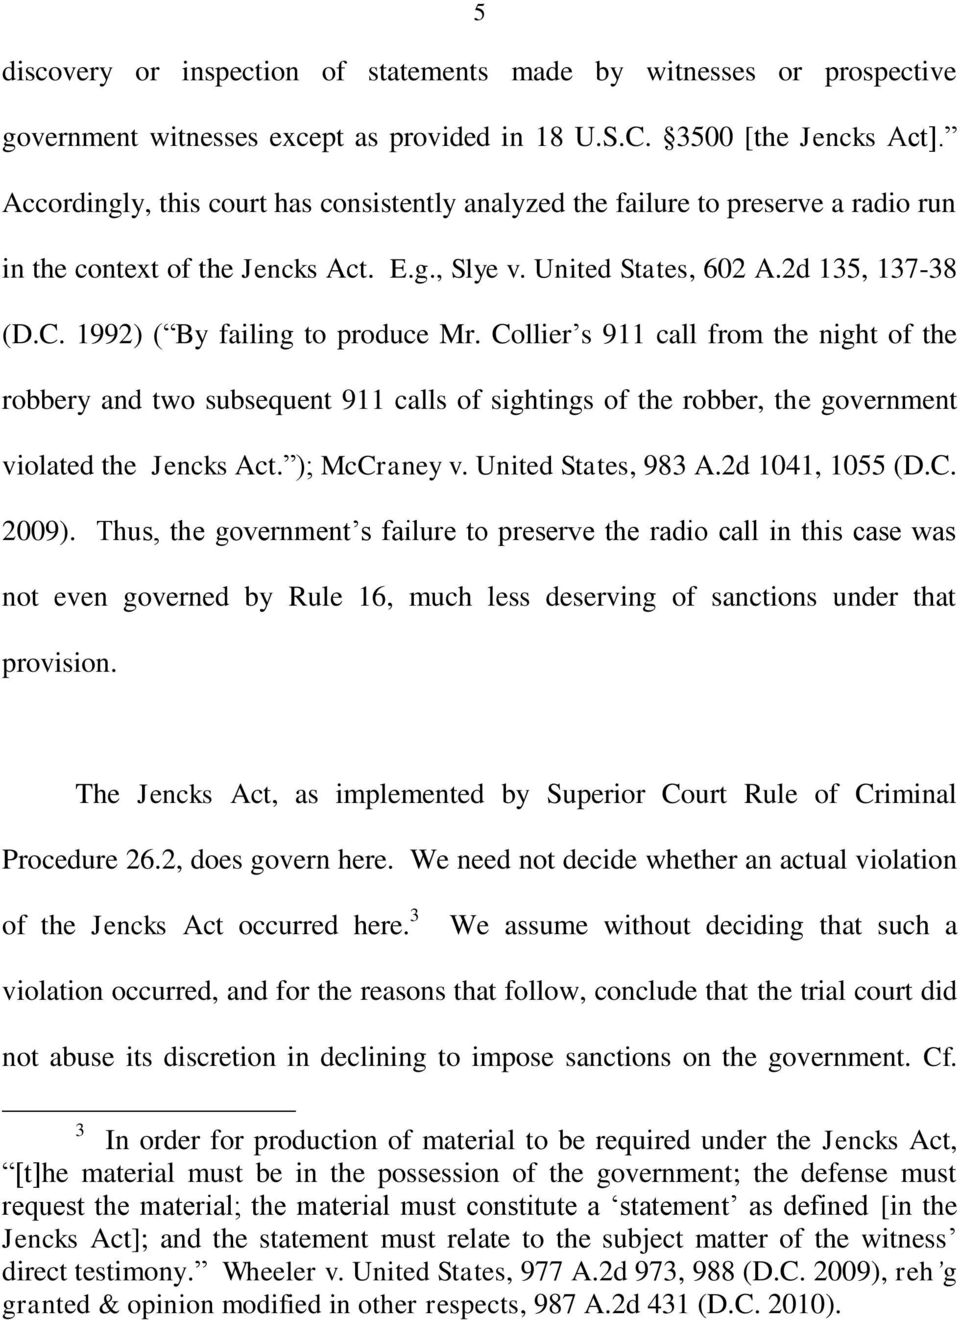 1992) ( By failing to produce Mr. Collier s 911 call from the night of the robbery and two subsequent 911 calls of sightings of the robber, the government violated the Jencks Act. ); McCraney v.